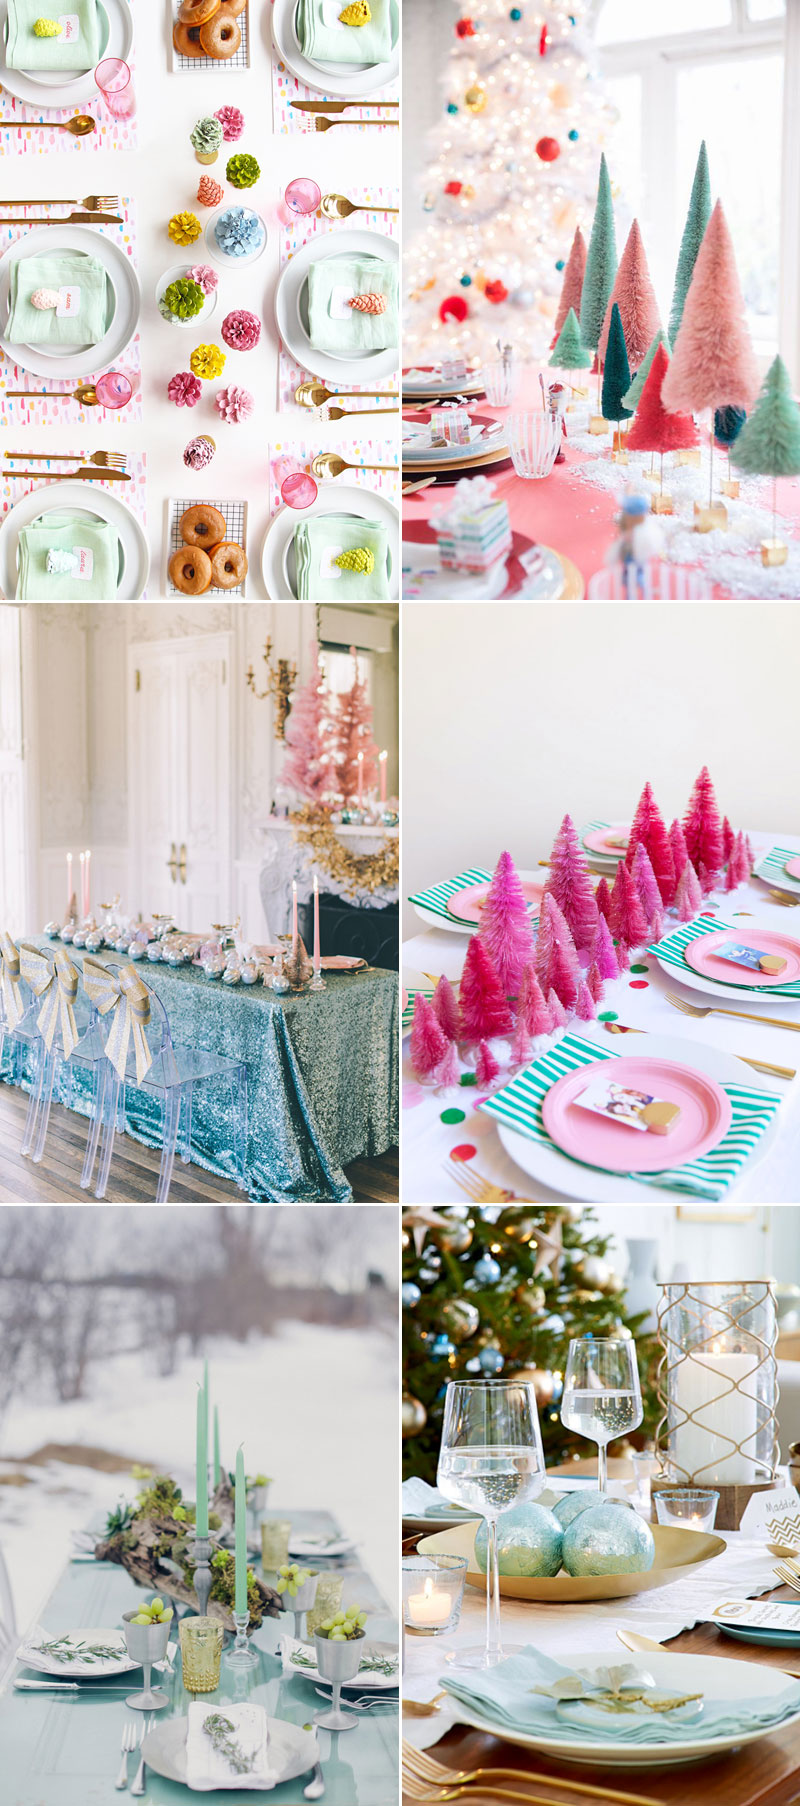 32 Beautiful Christmas Table Decoration & Placesetting Ideas ...